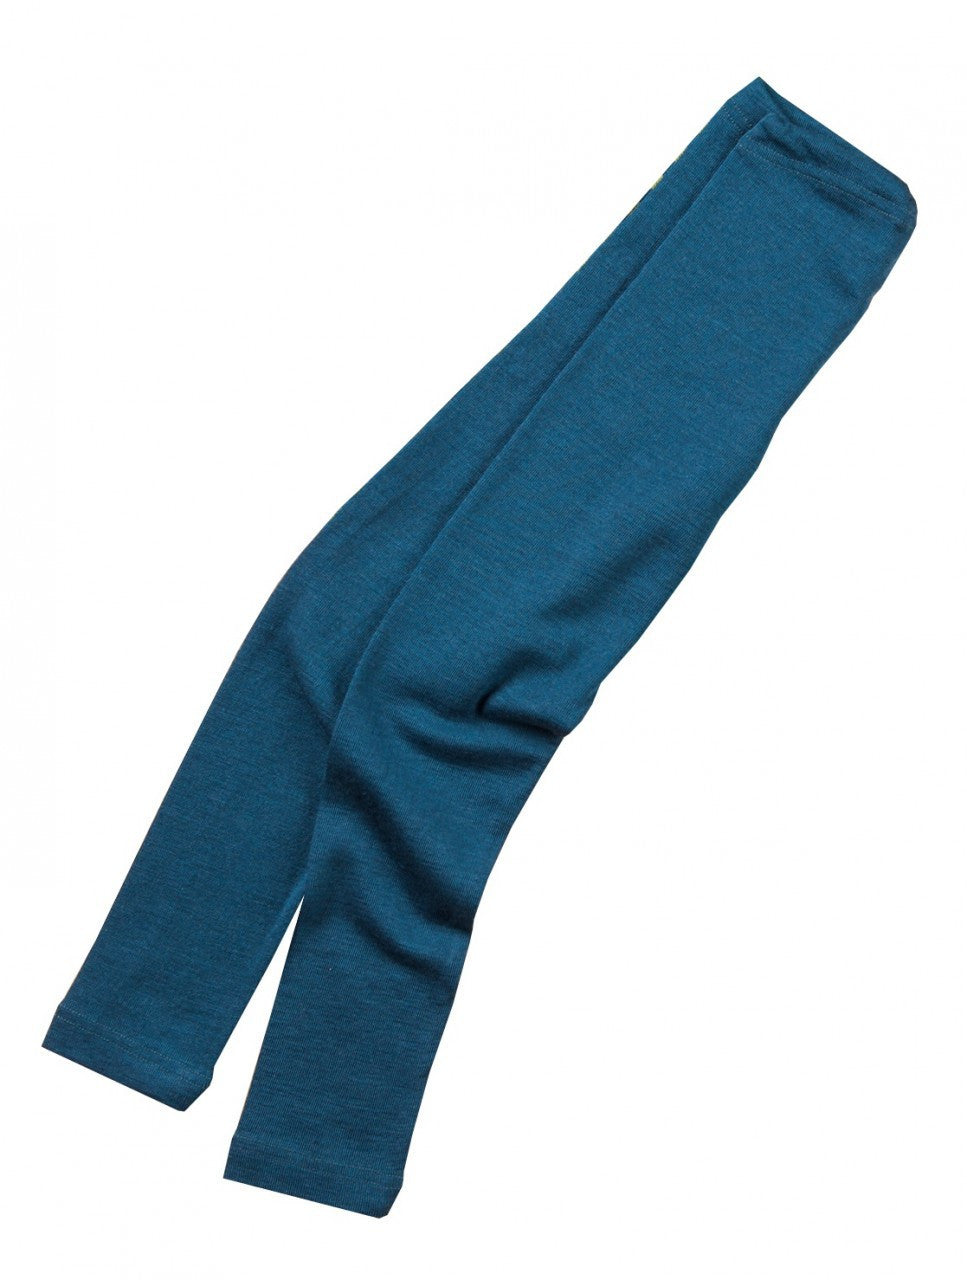 Children's Long Johns in 100% Organic Cotton